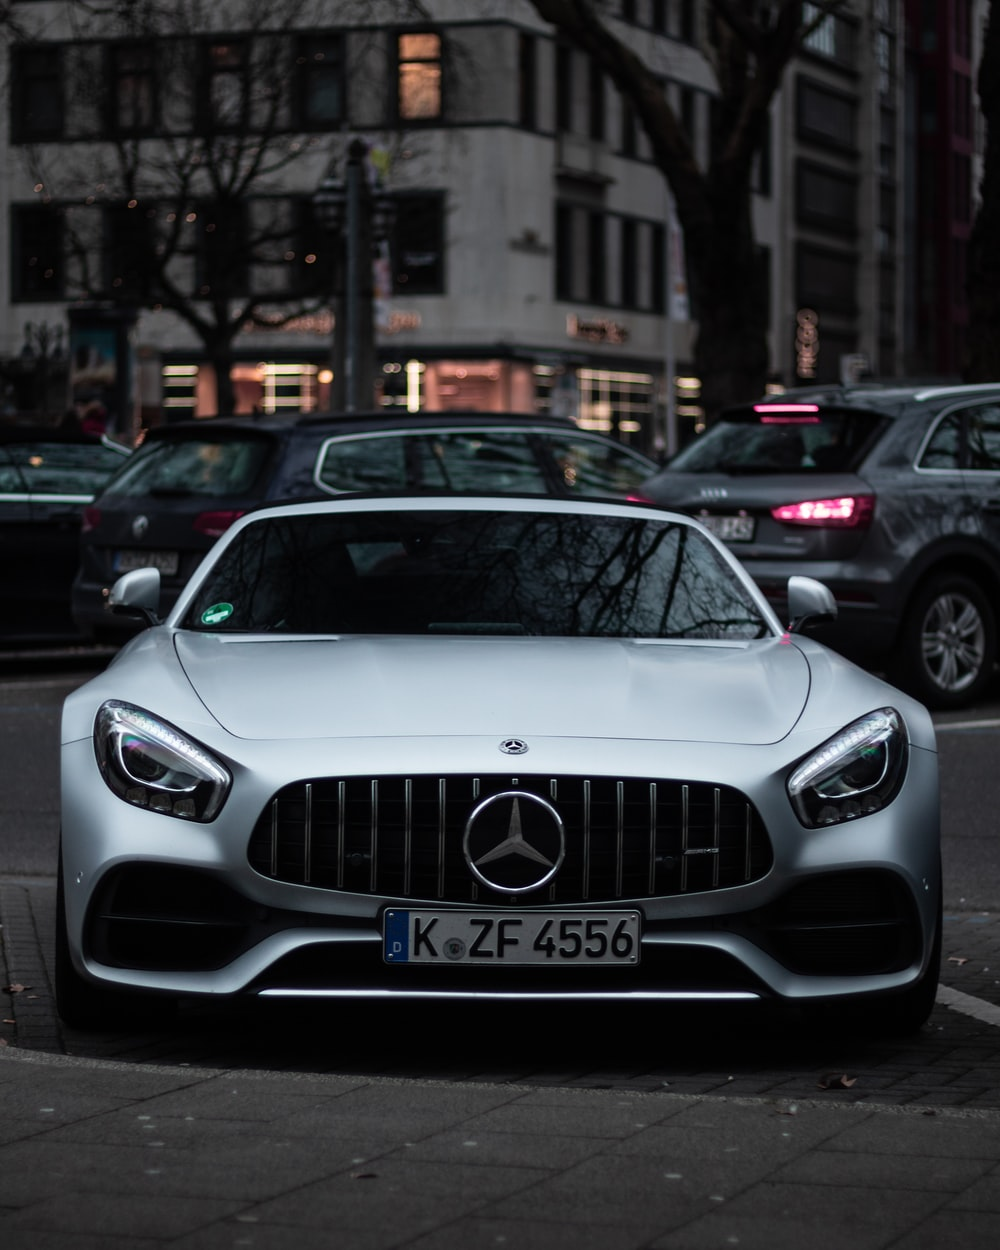 gray Mercedes-Benz car